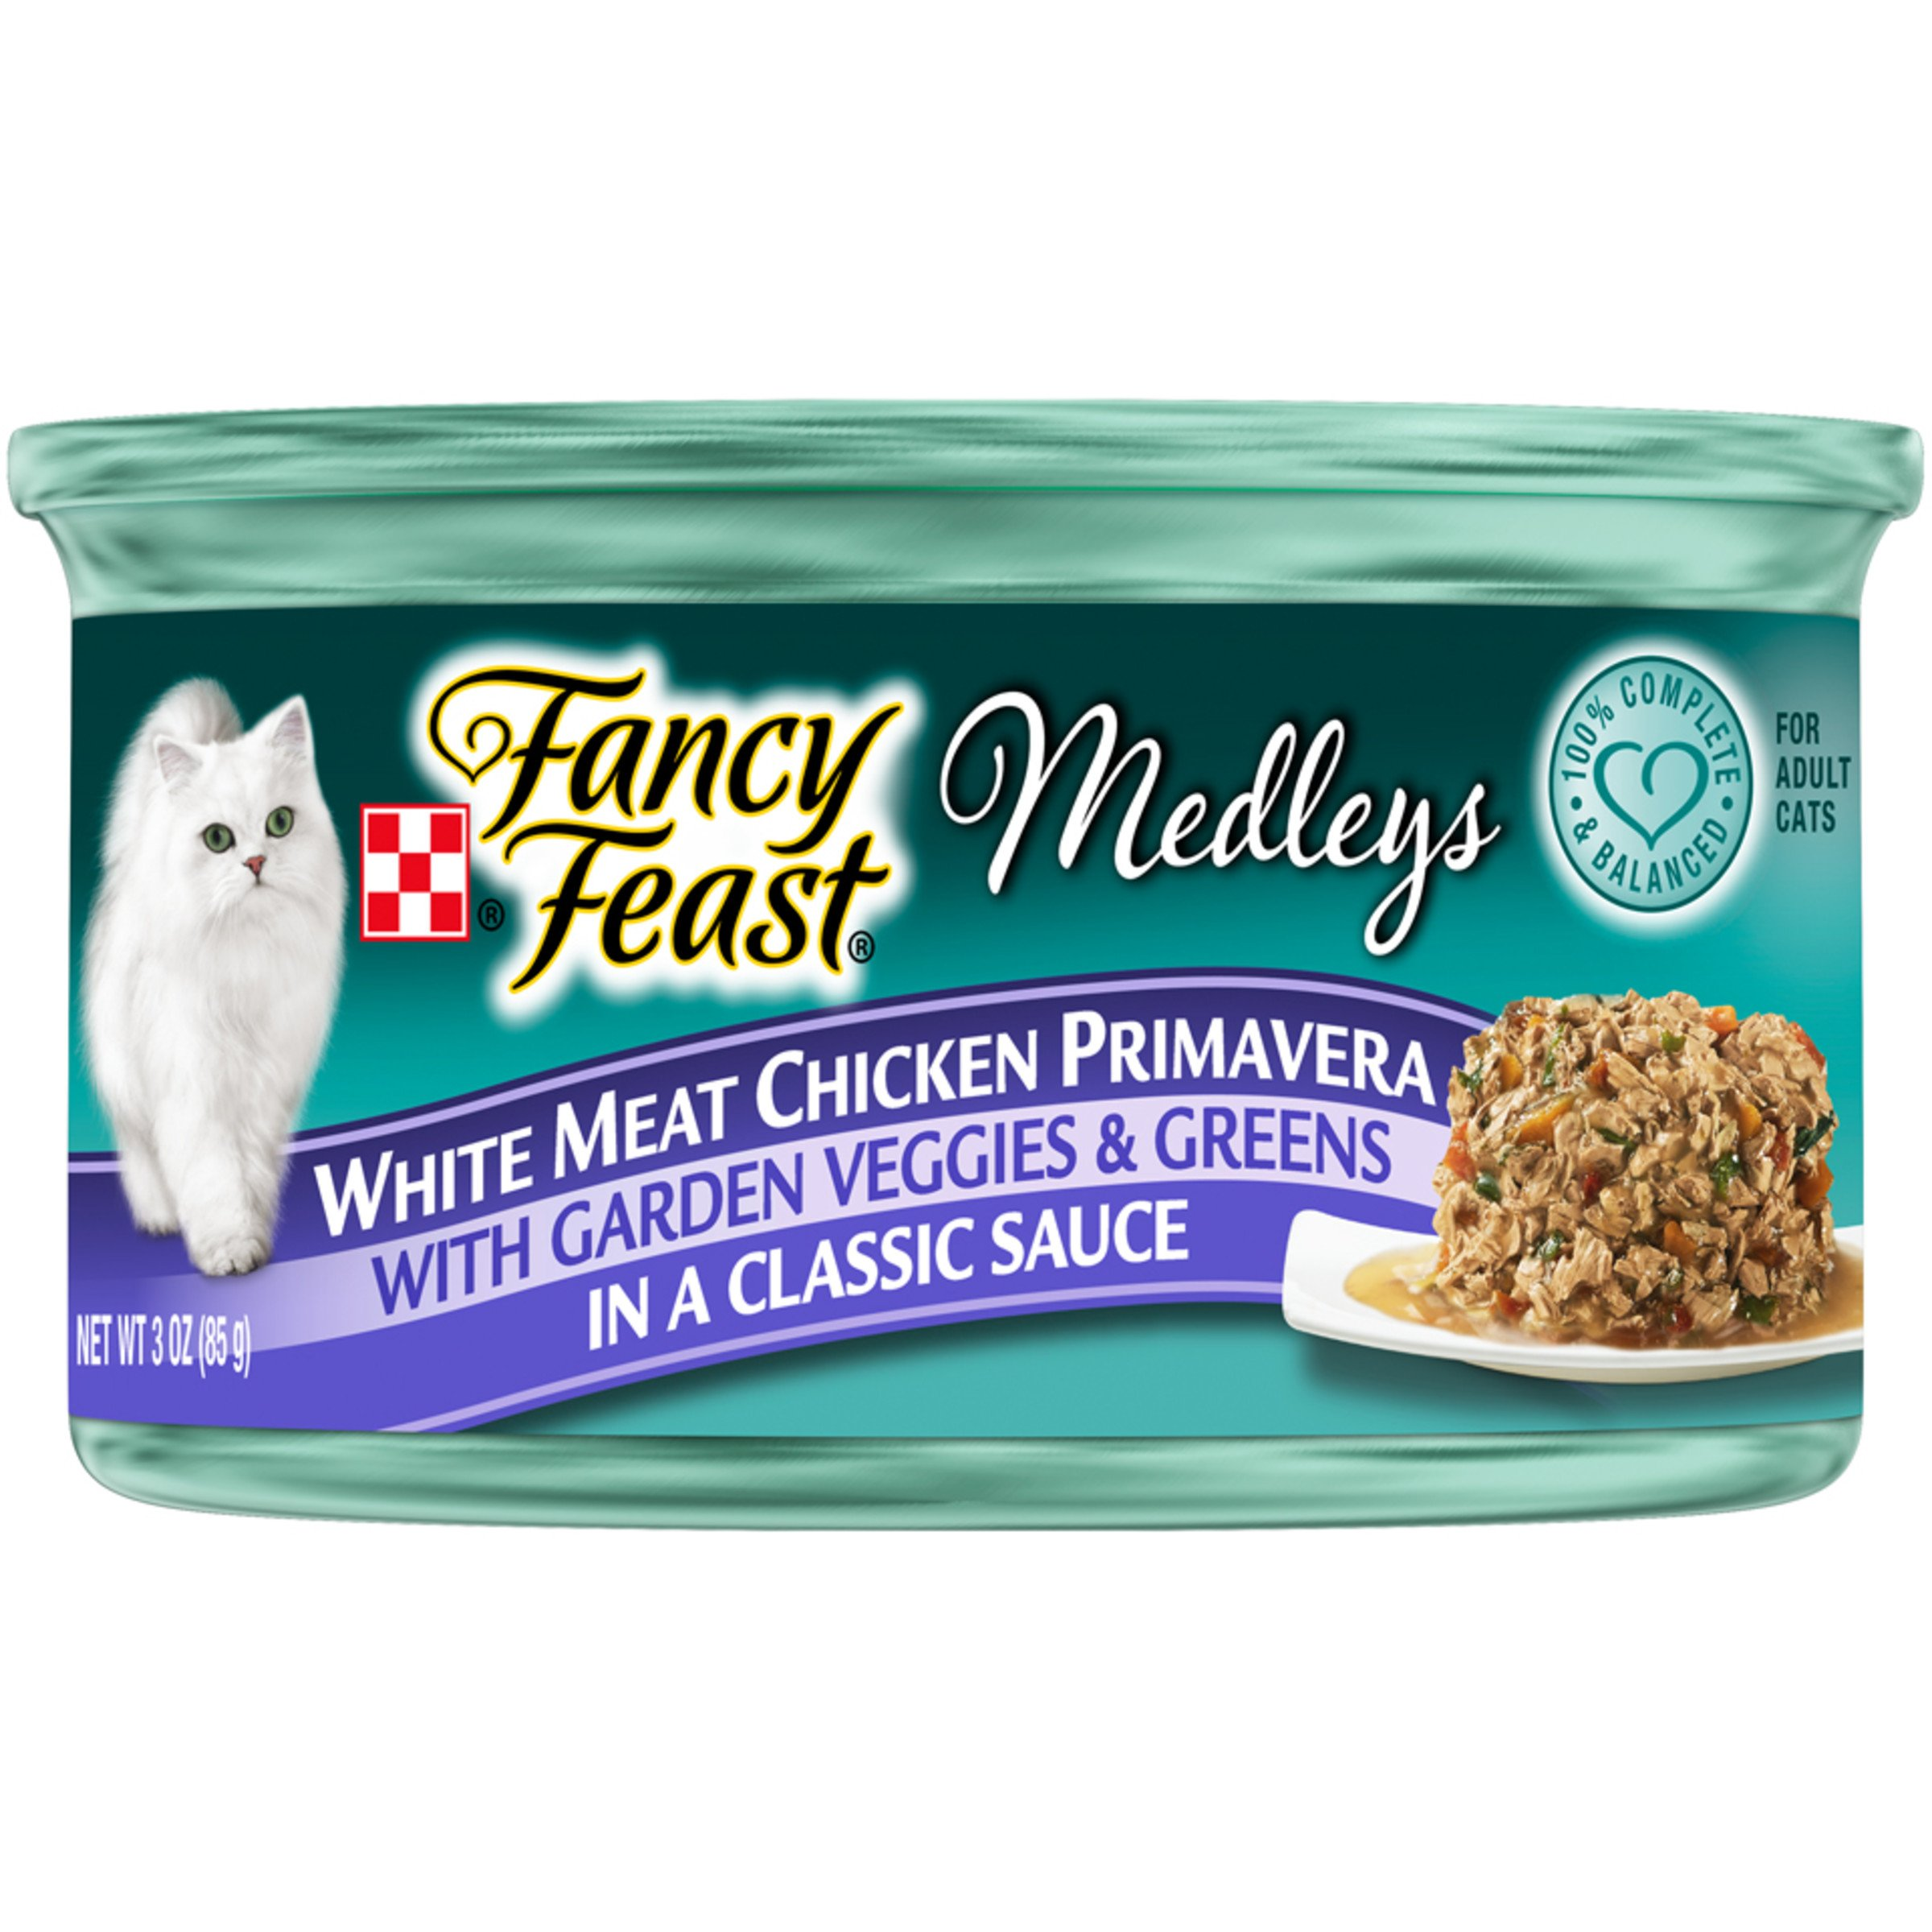 Purina Fancy Feast Medleys Adult Canned Wet Cat Food - (24) 3 oz.